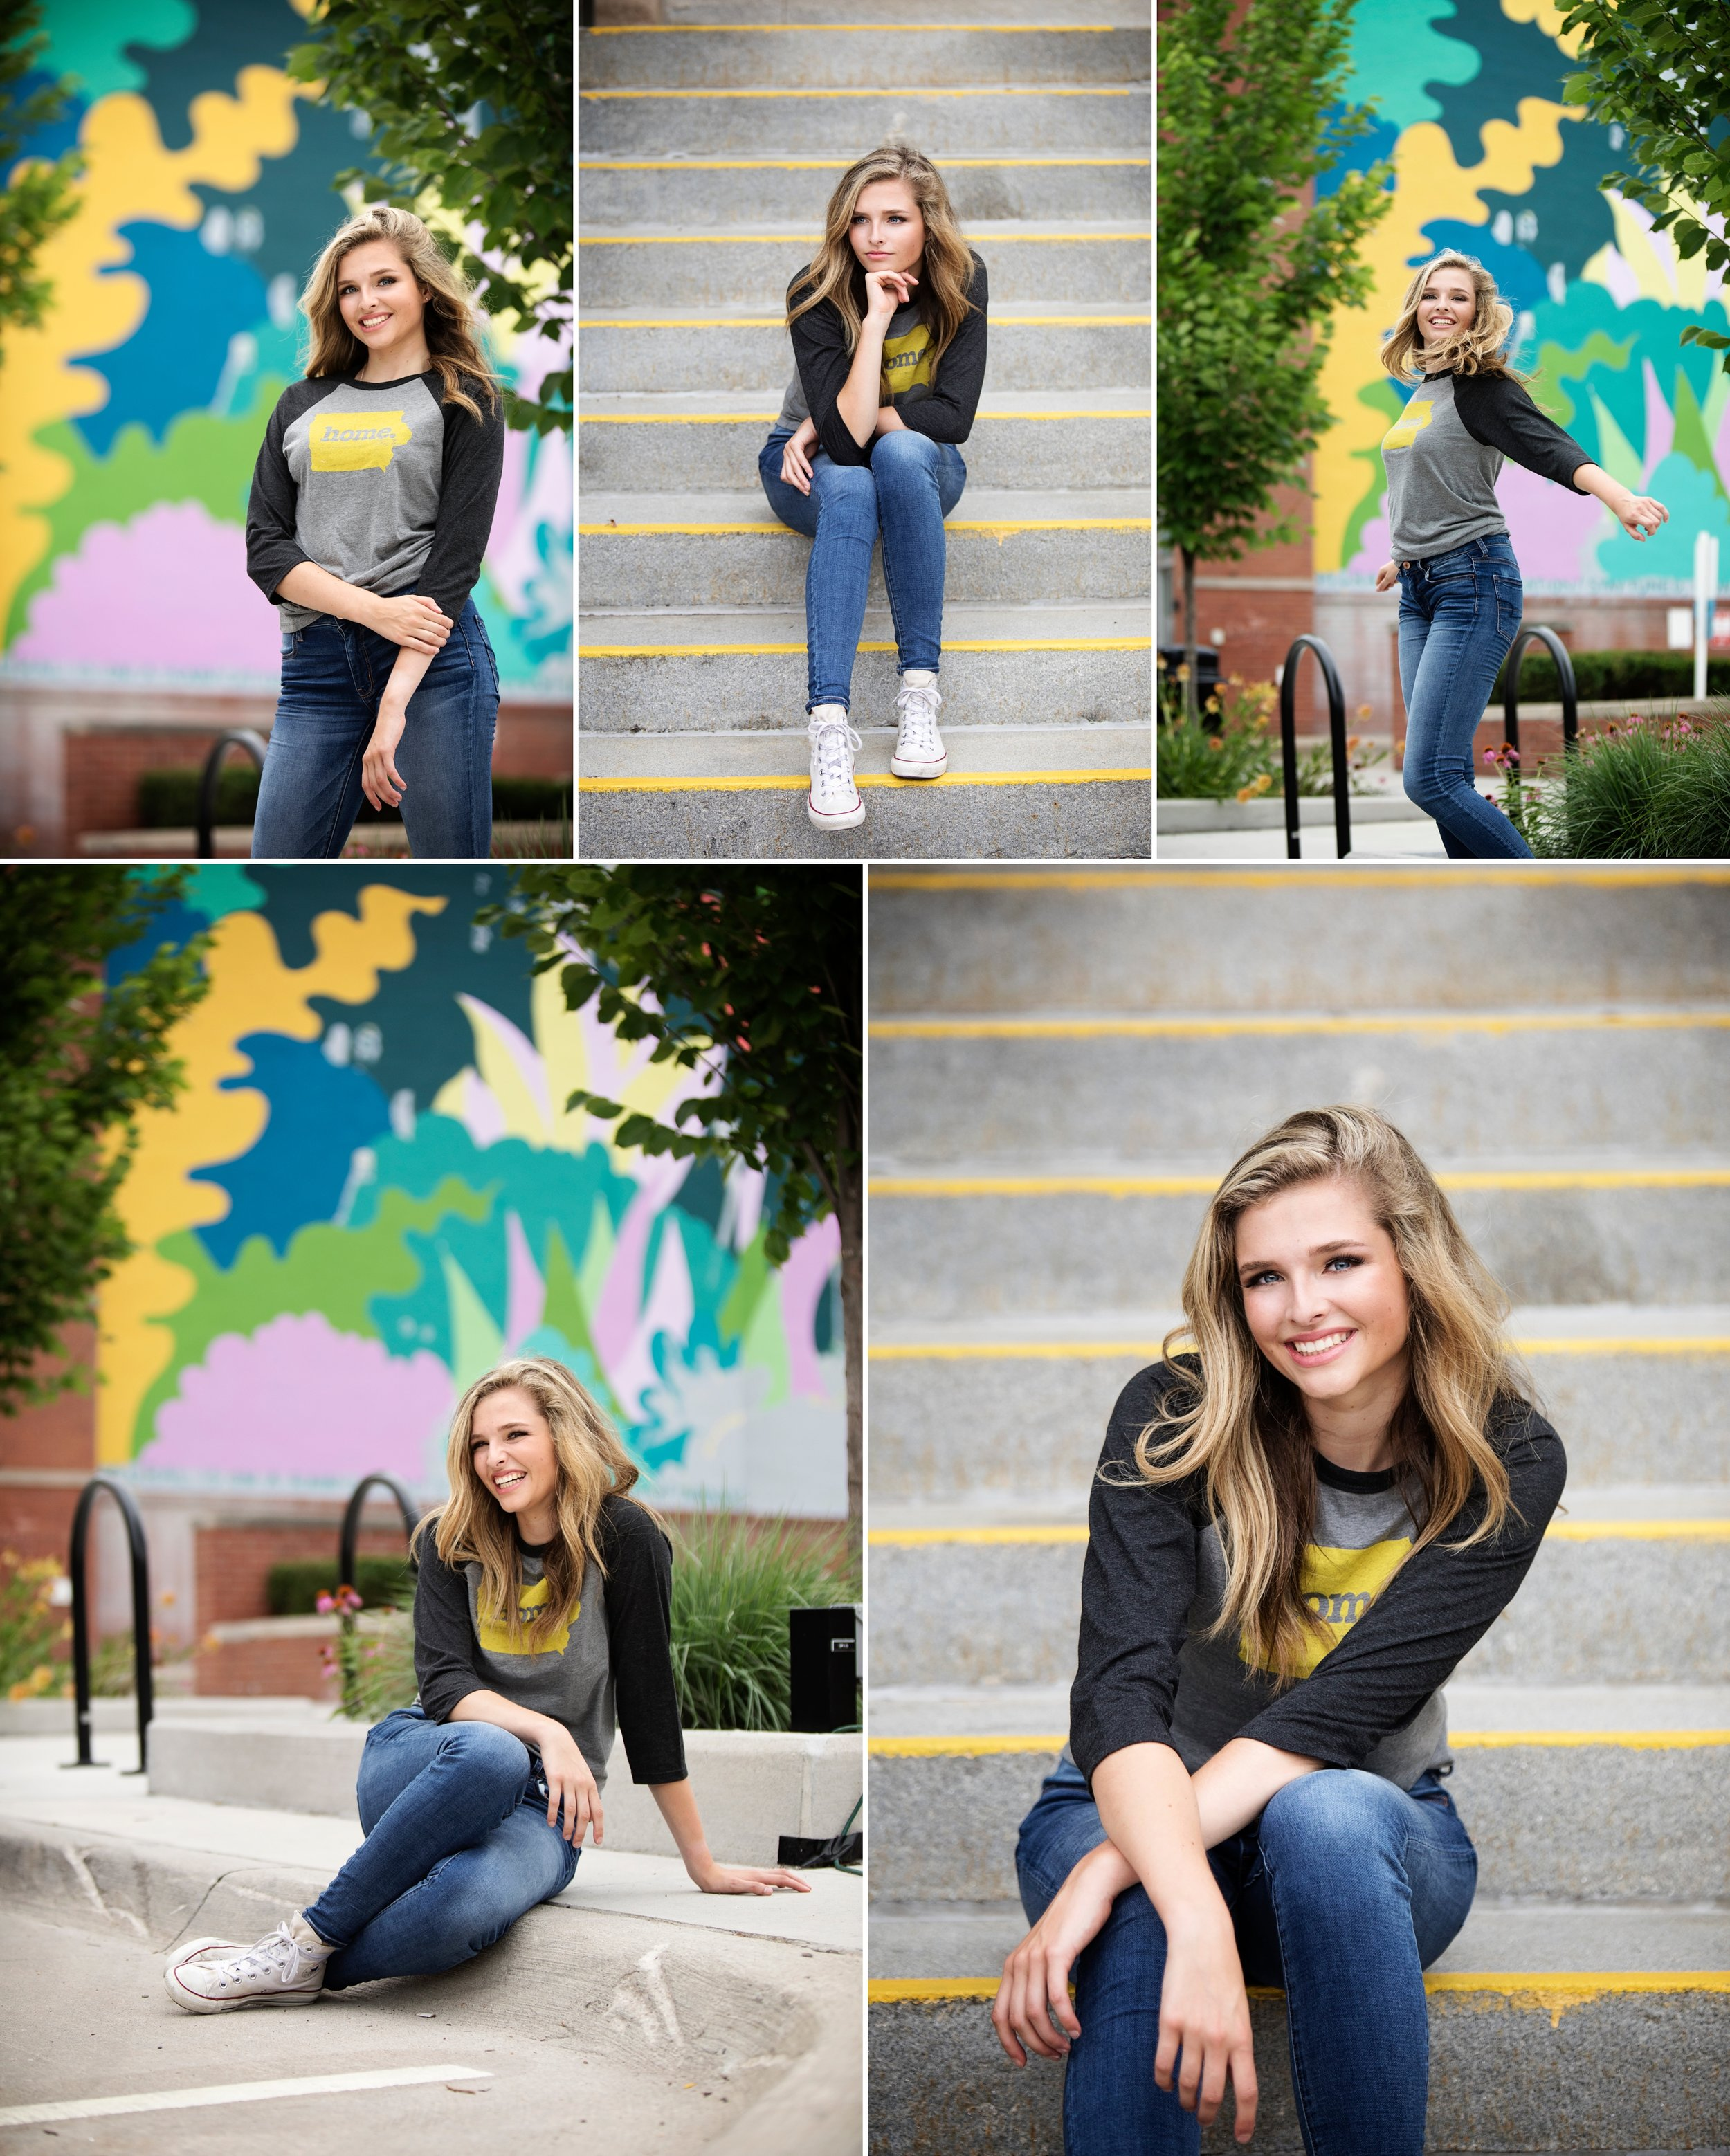 Iowa-City-Senior-Pictures-004.jpg